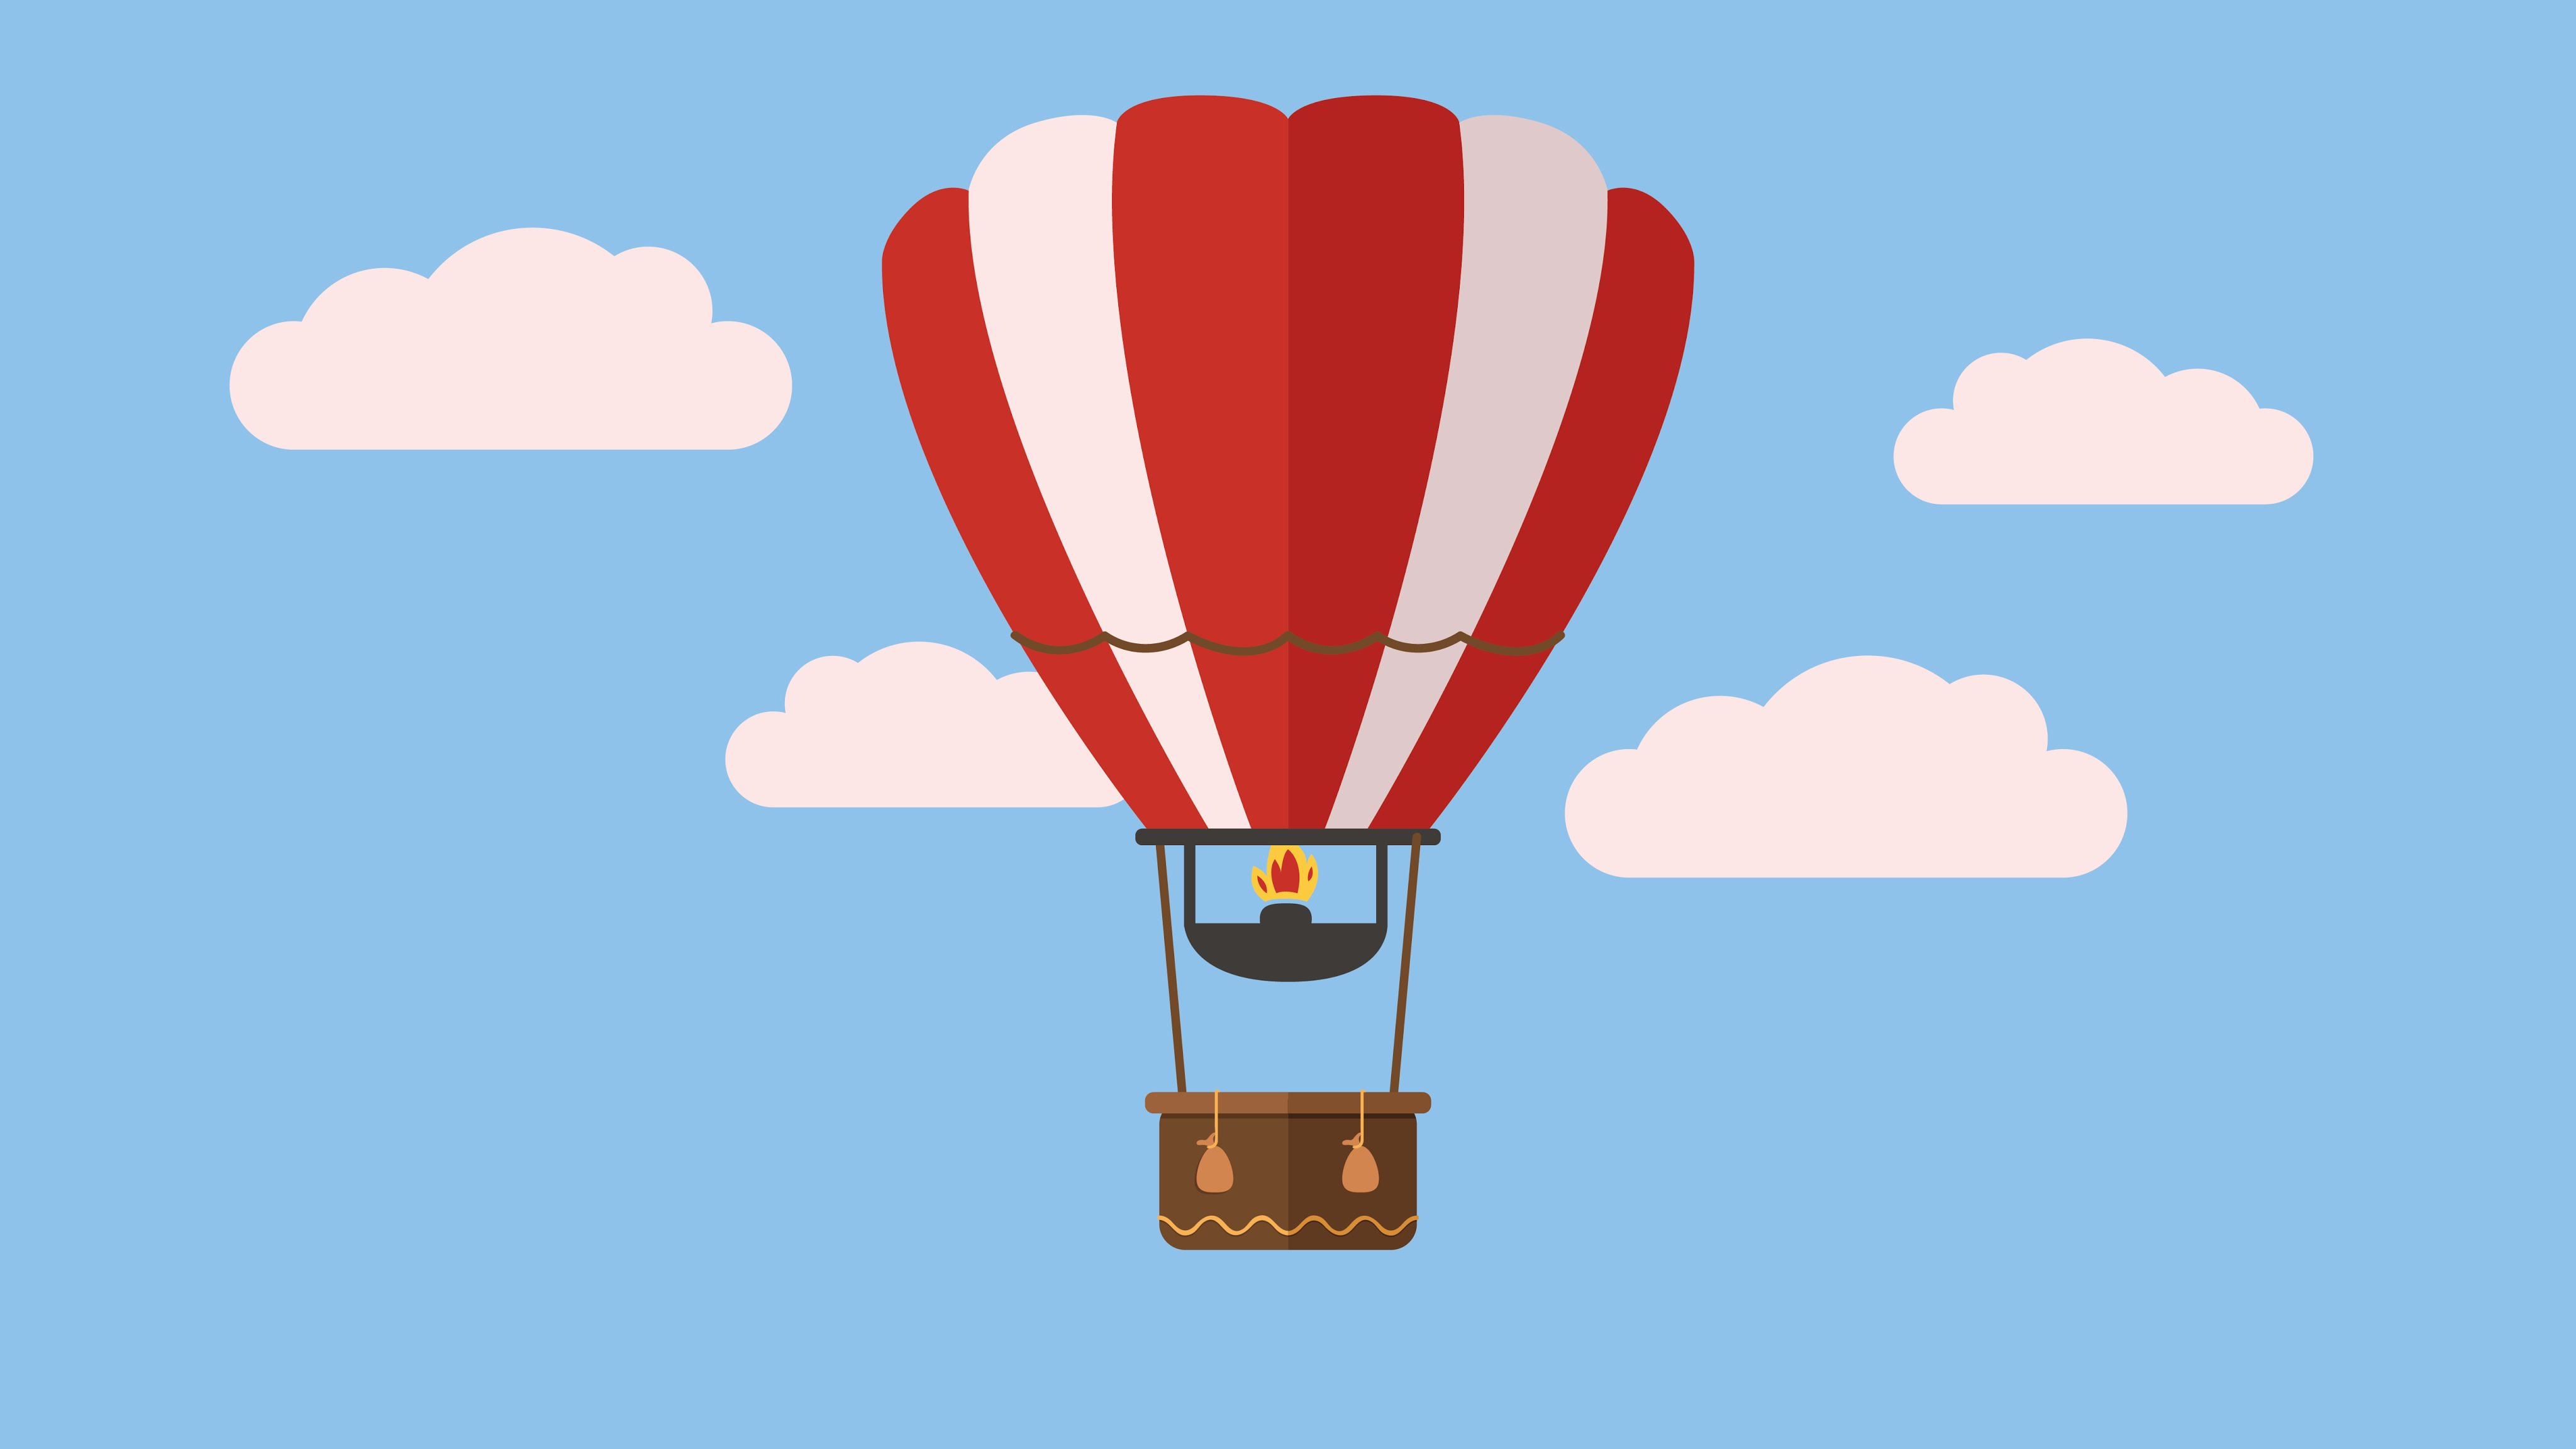 4096x2304 Hot Air Balloon Raav Flat Design